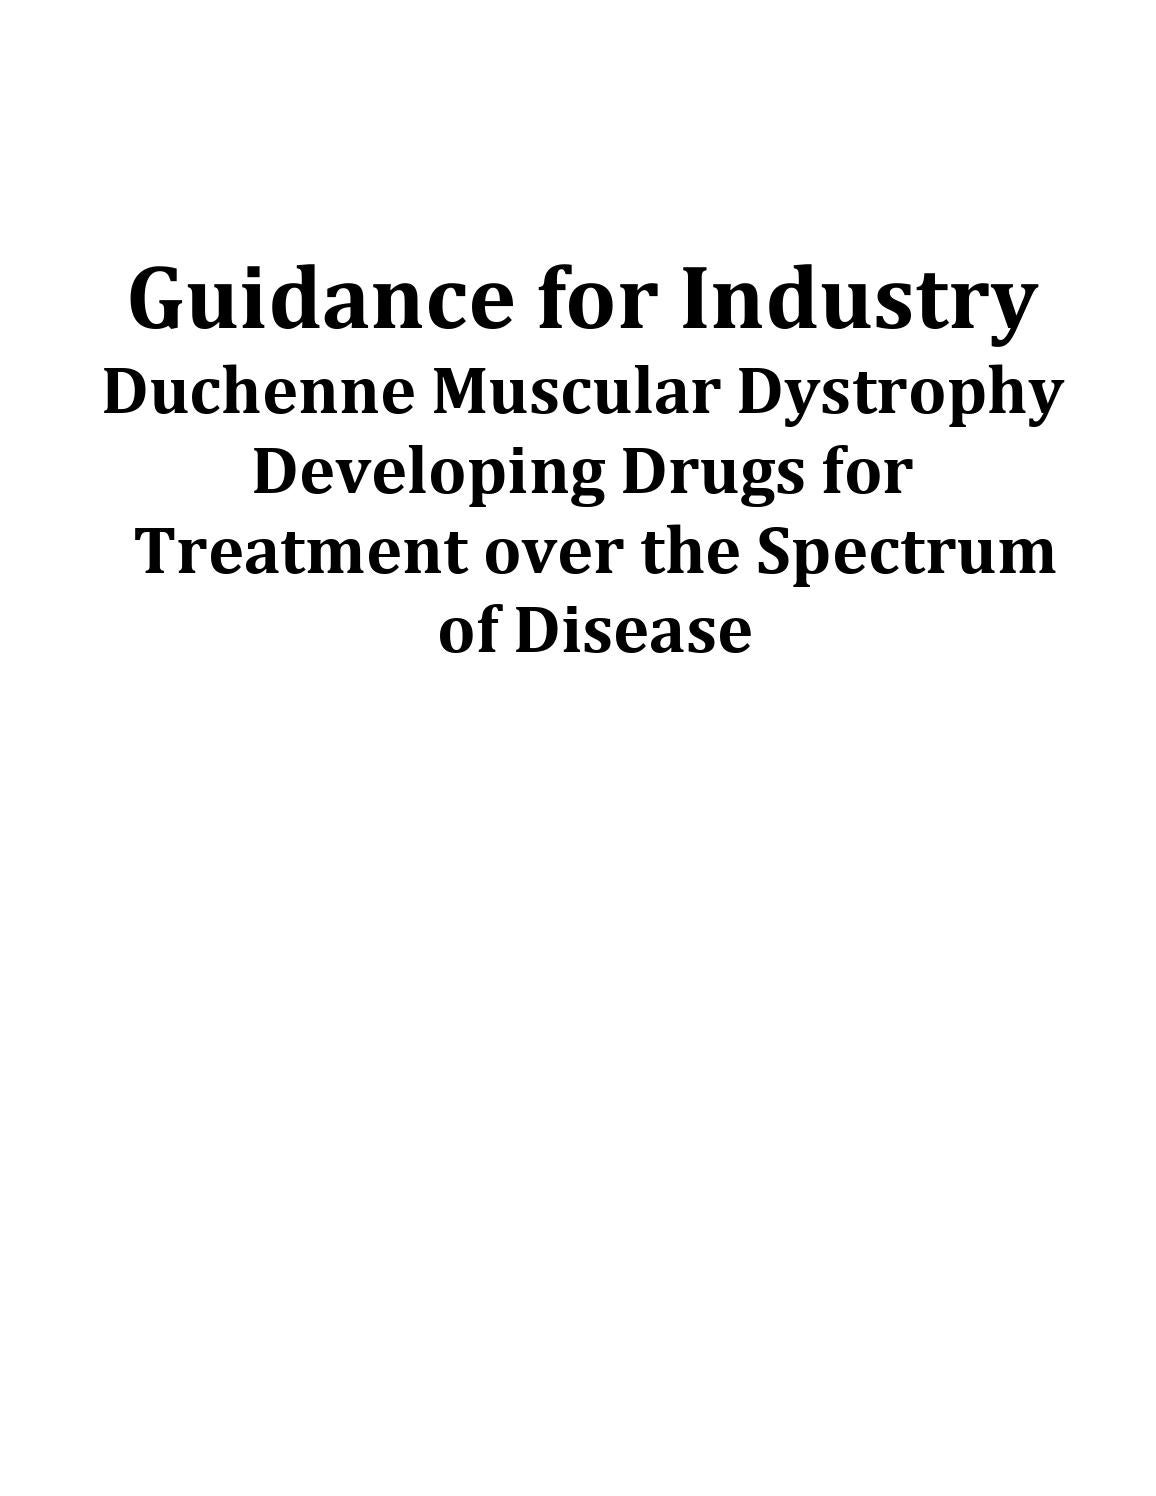 Duchenne Muscular Dystrophy Symptoms Management And Prognosis Guidance For Industry By Parent Project Muscular Dystrophy